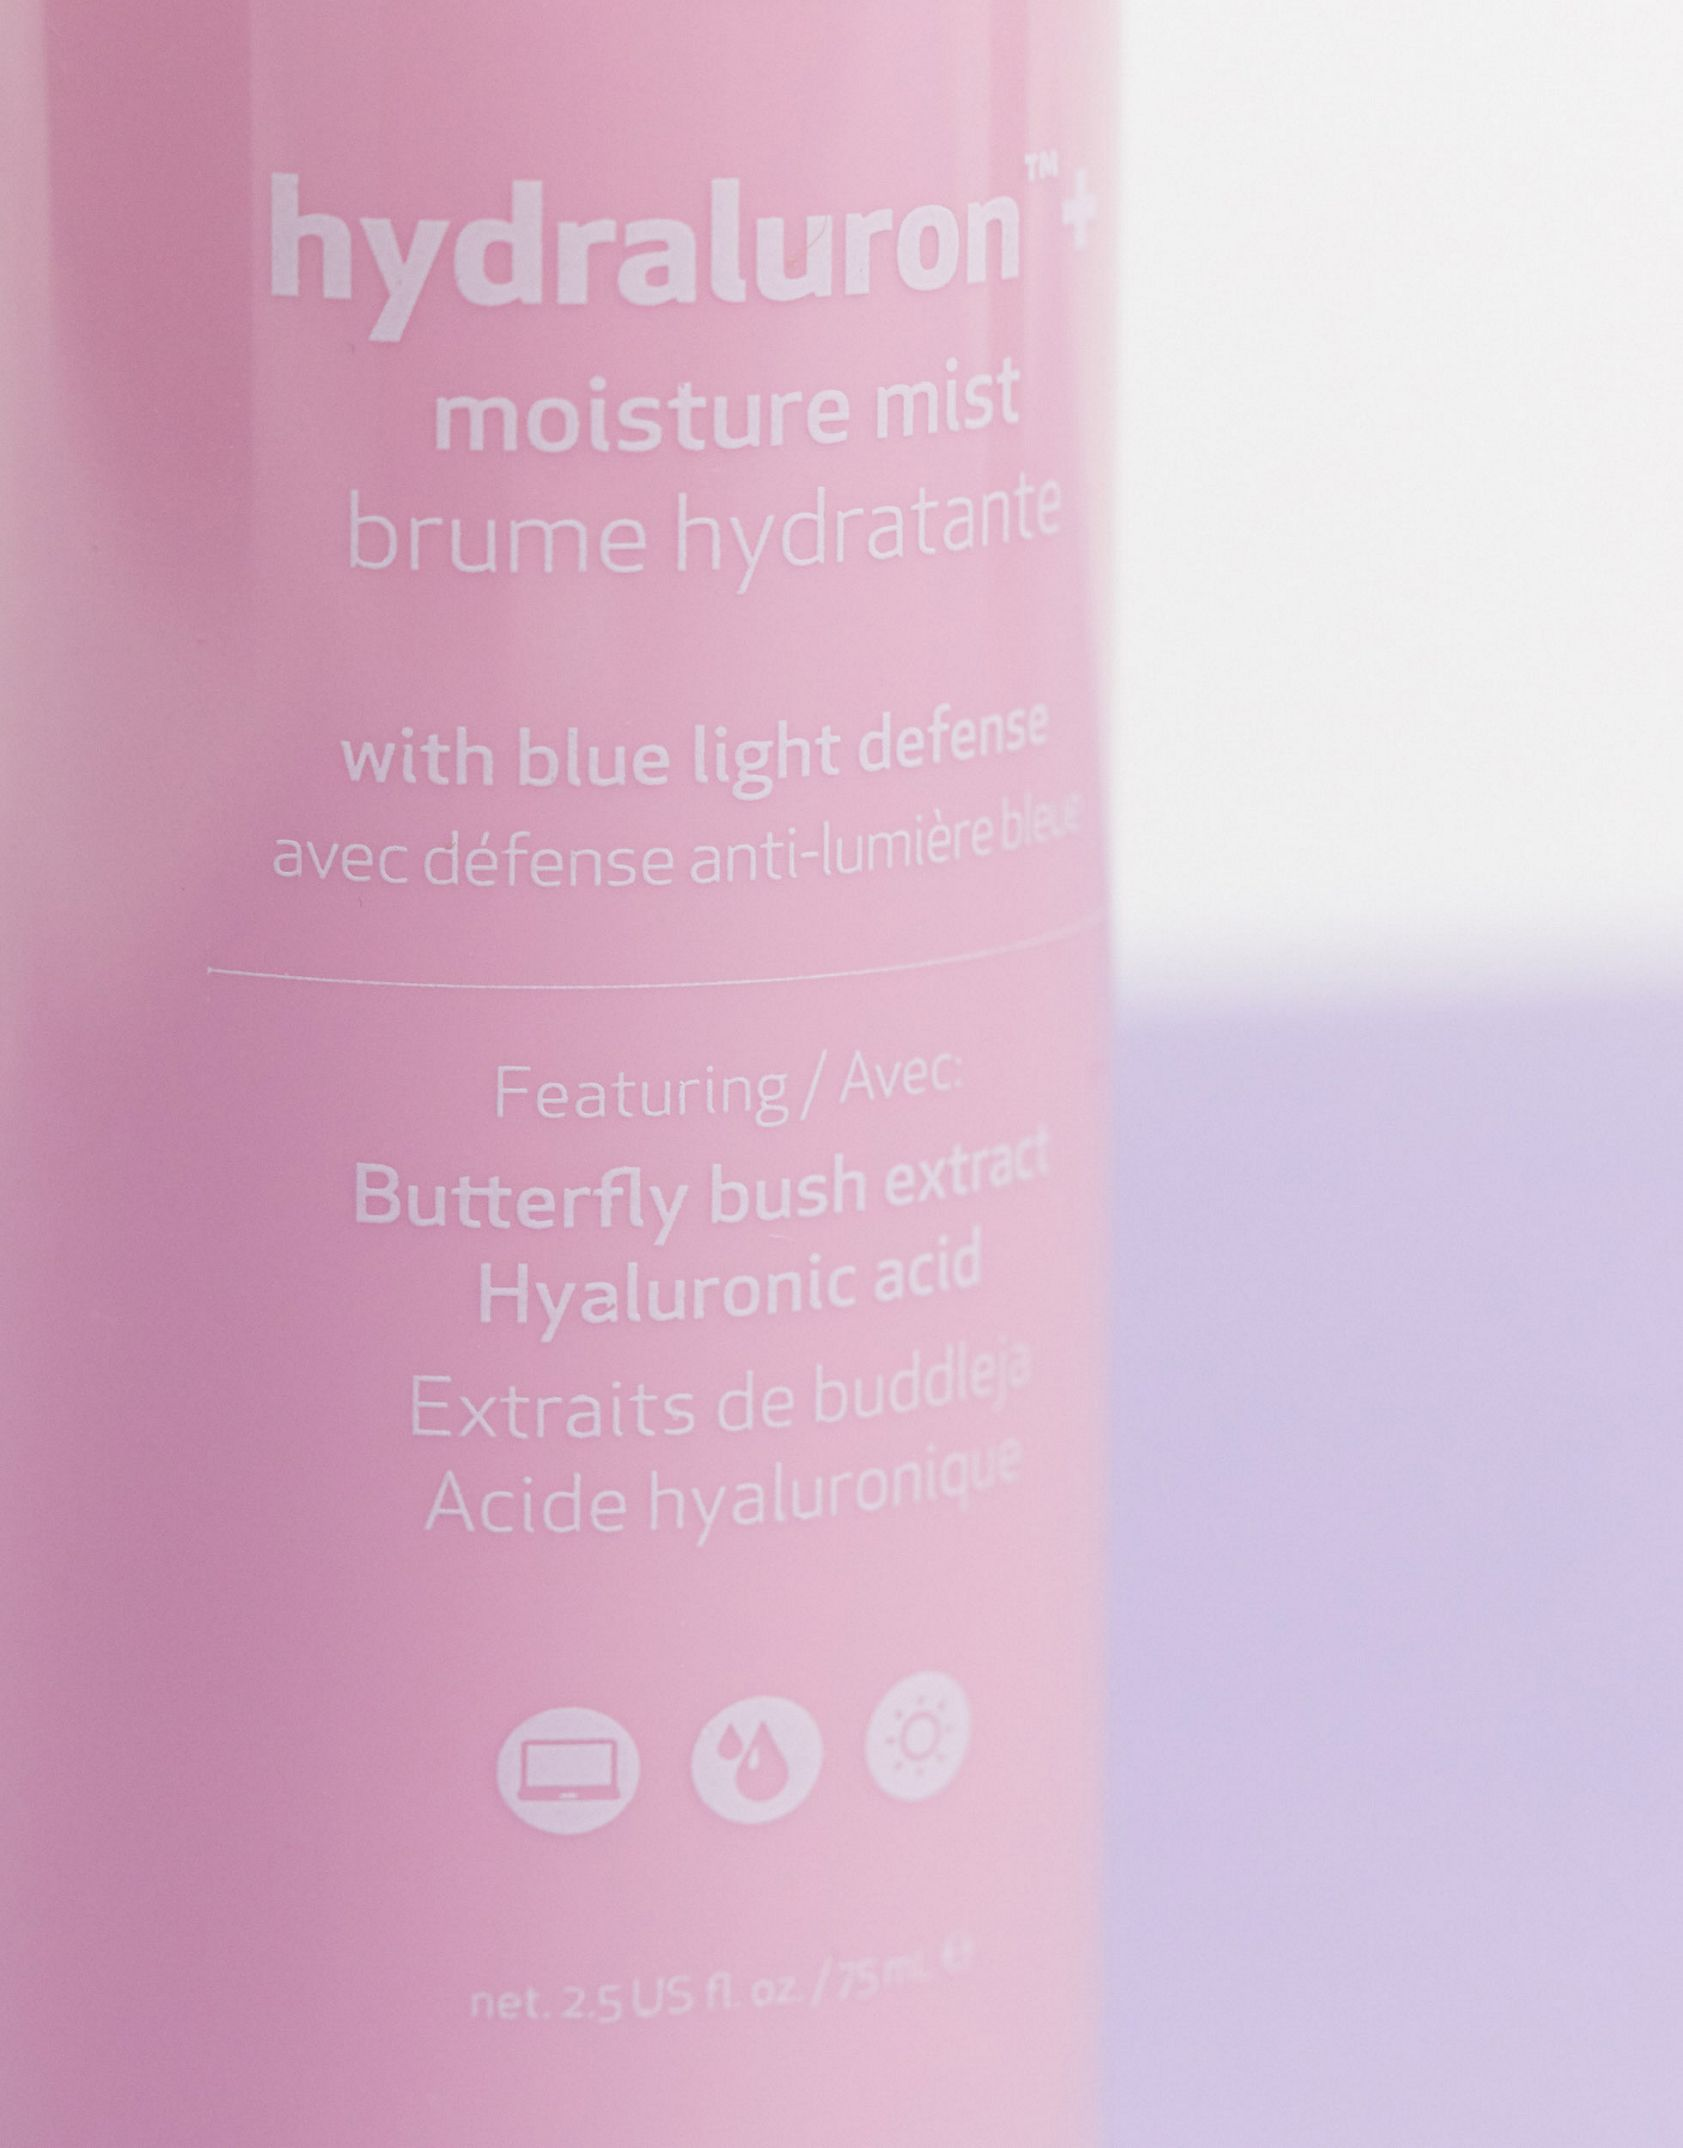 Indeed Labs Hydraluron Moisture Face Mist 75ml - ASOS Price Checker